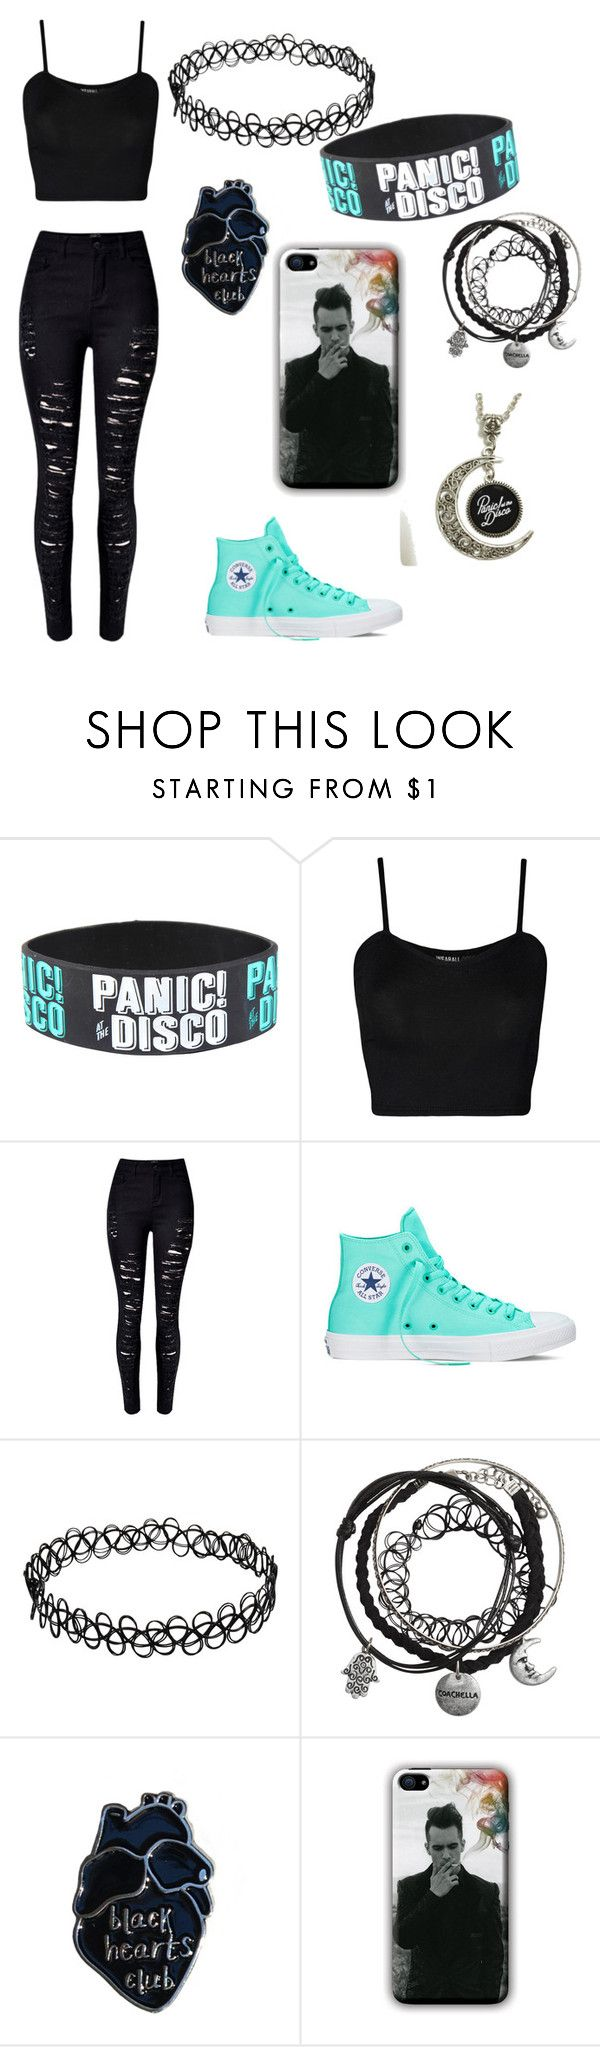 """Panic at the disco outfit"" by emo69 ❤ liked on Polyvore featuring WearAll, WithChic and Converse"